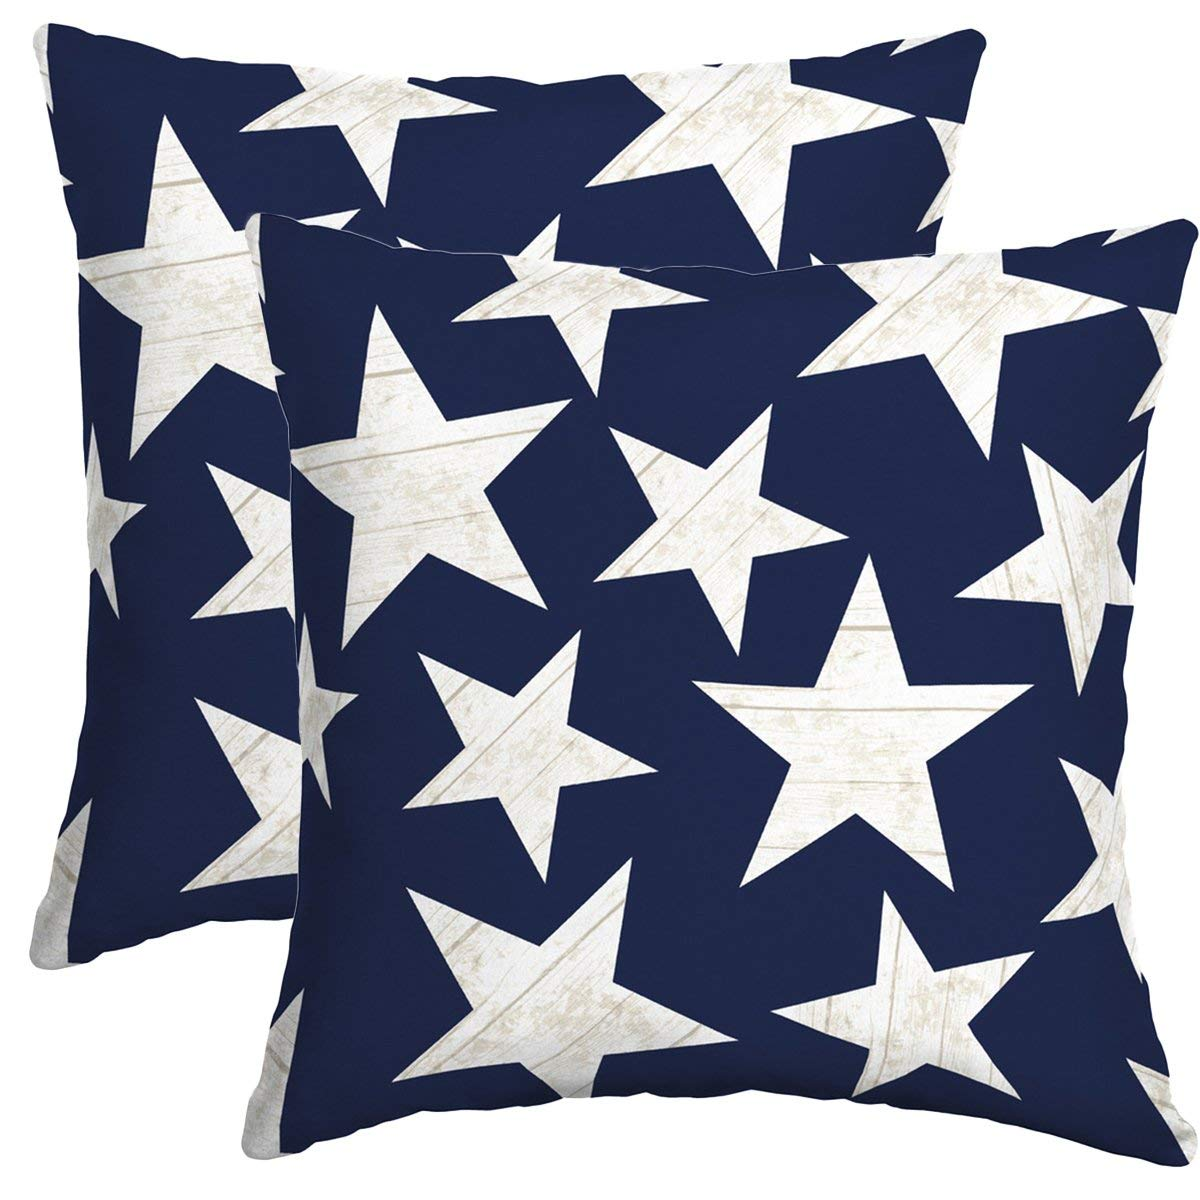 "Set of 2 Indoor/Outdoor Throw Pillow 16"" x 16"" x 4"" in Polyester Fabric Stars by Comfort Classics Inc."